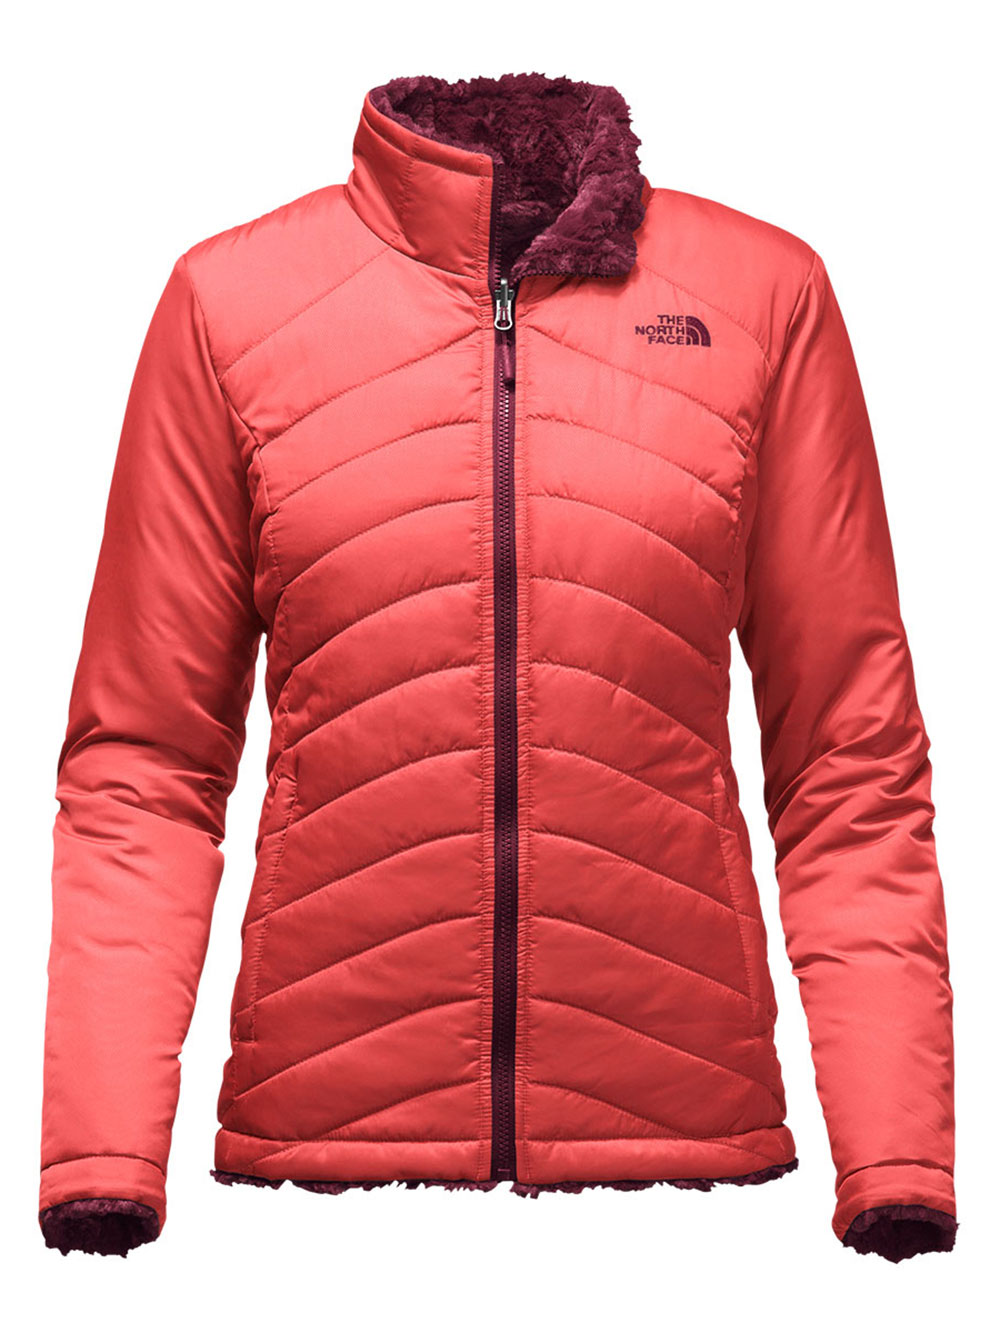 The North Face Women's Mossbud Swirl Reversible Jacket (Sizes S - XL)